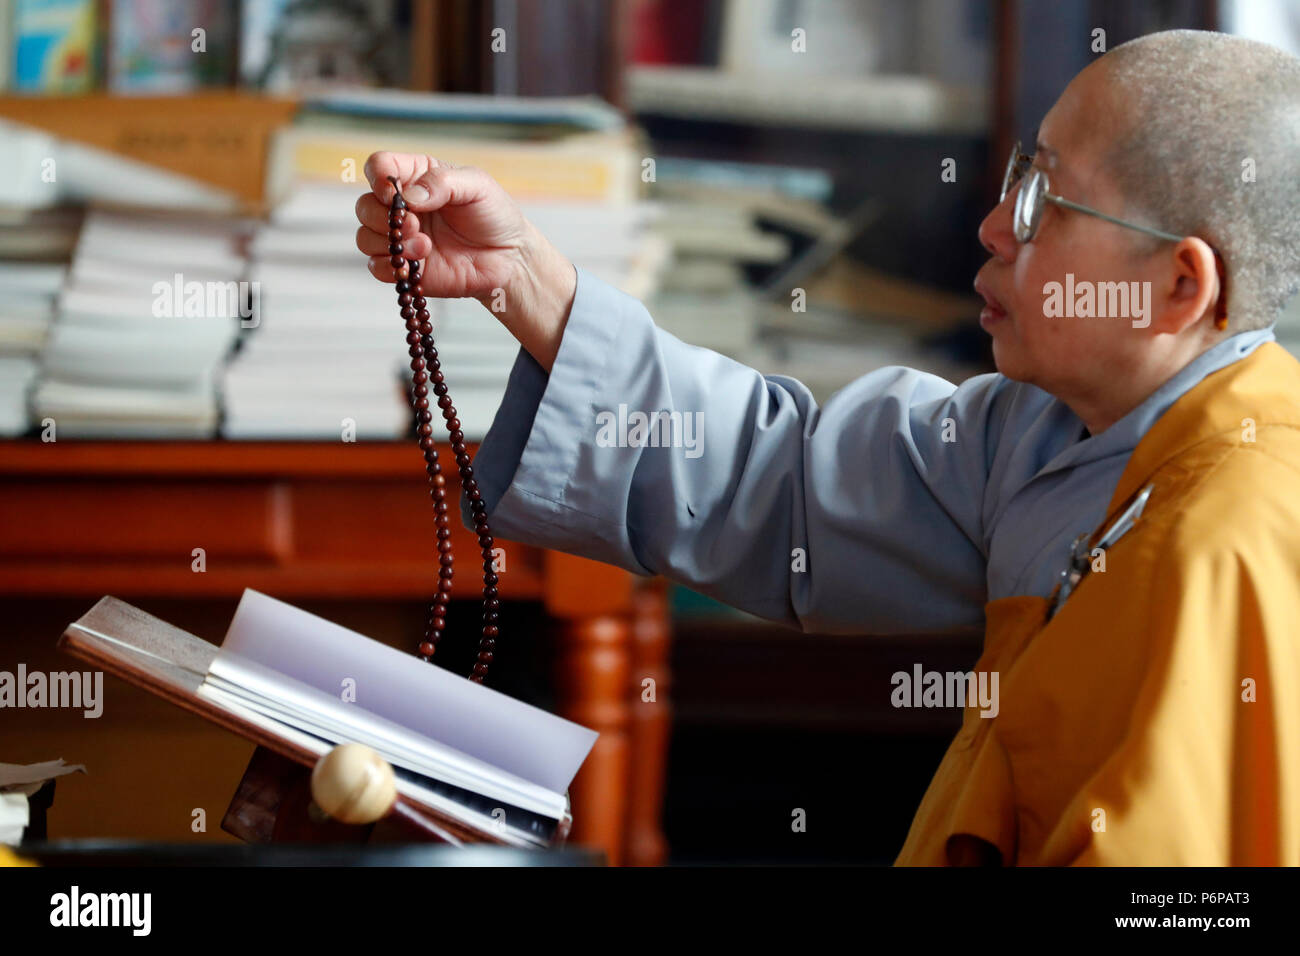 Chua Tu An Buddhist temple.  Monk at buddhist ceremony.  Buddhist prayer beads or mala.  Saint-Pierre en Faucigny. France. - Stock Image